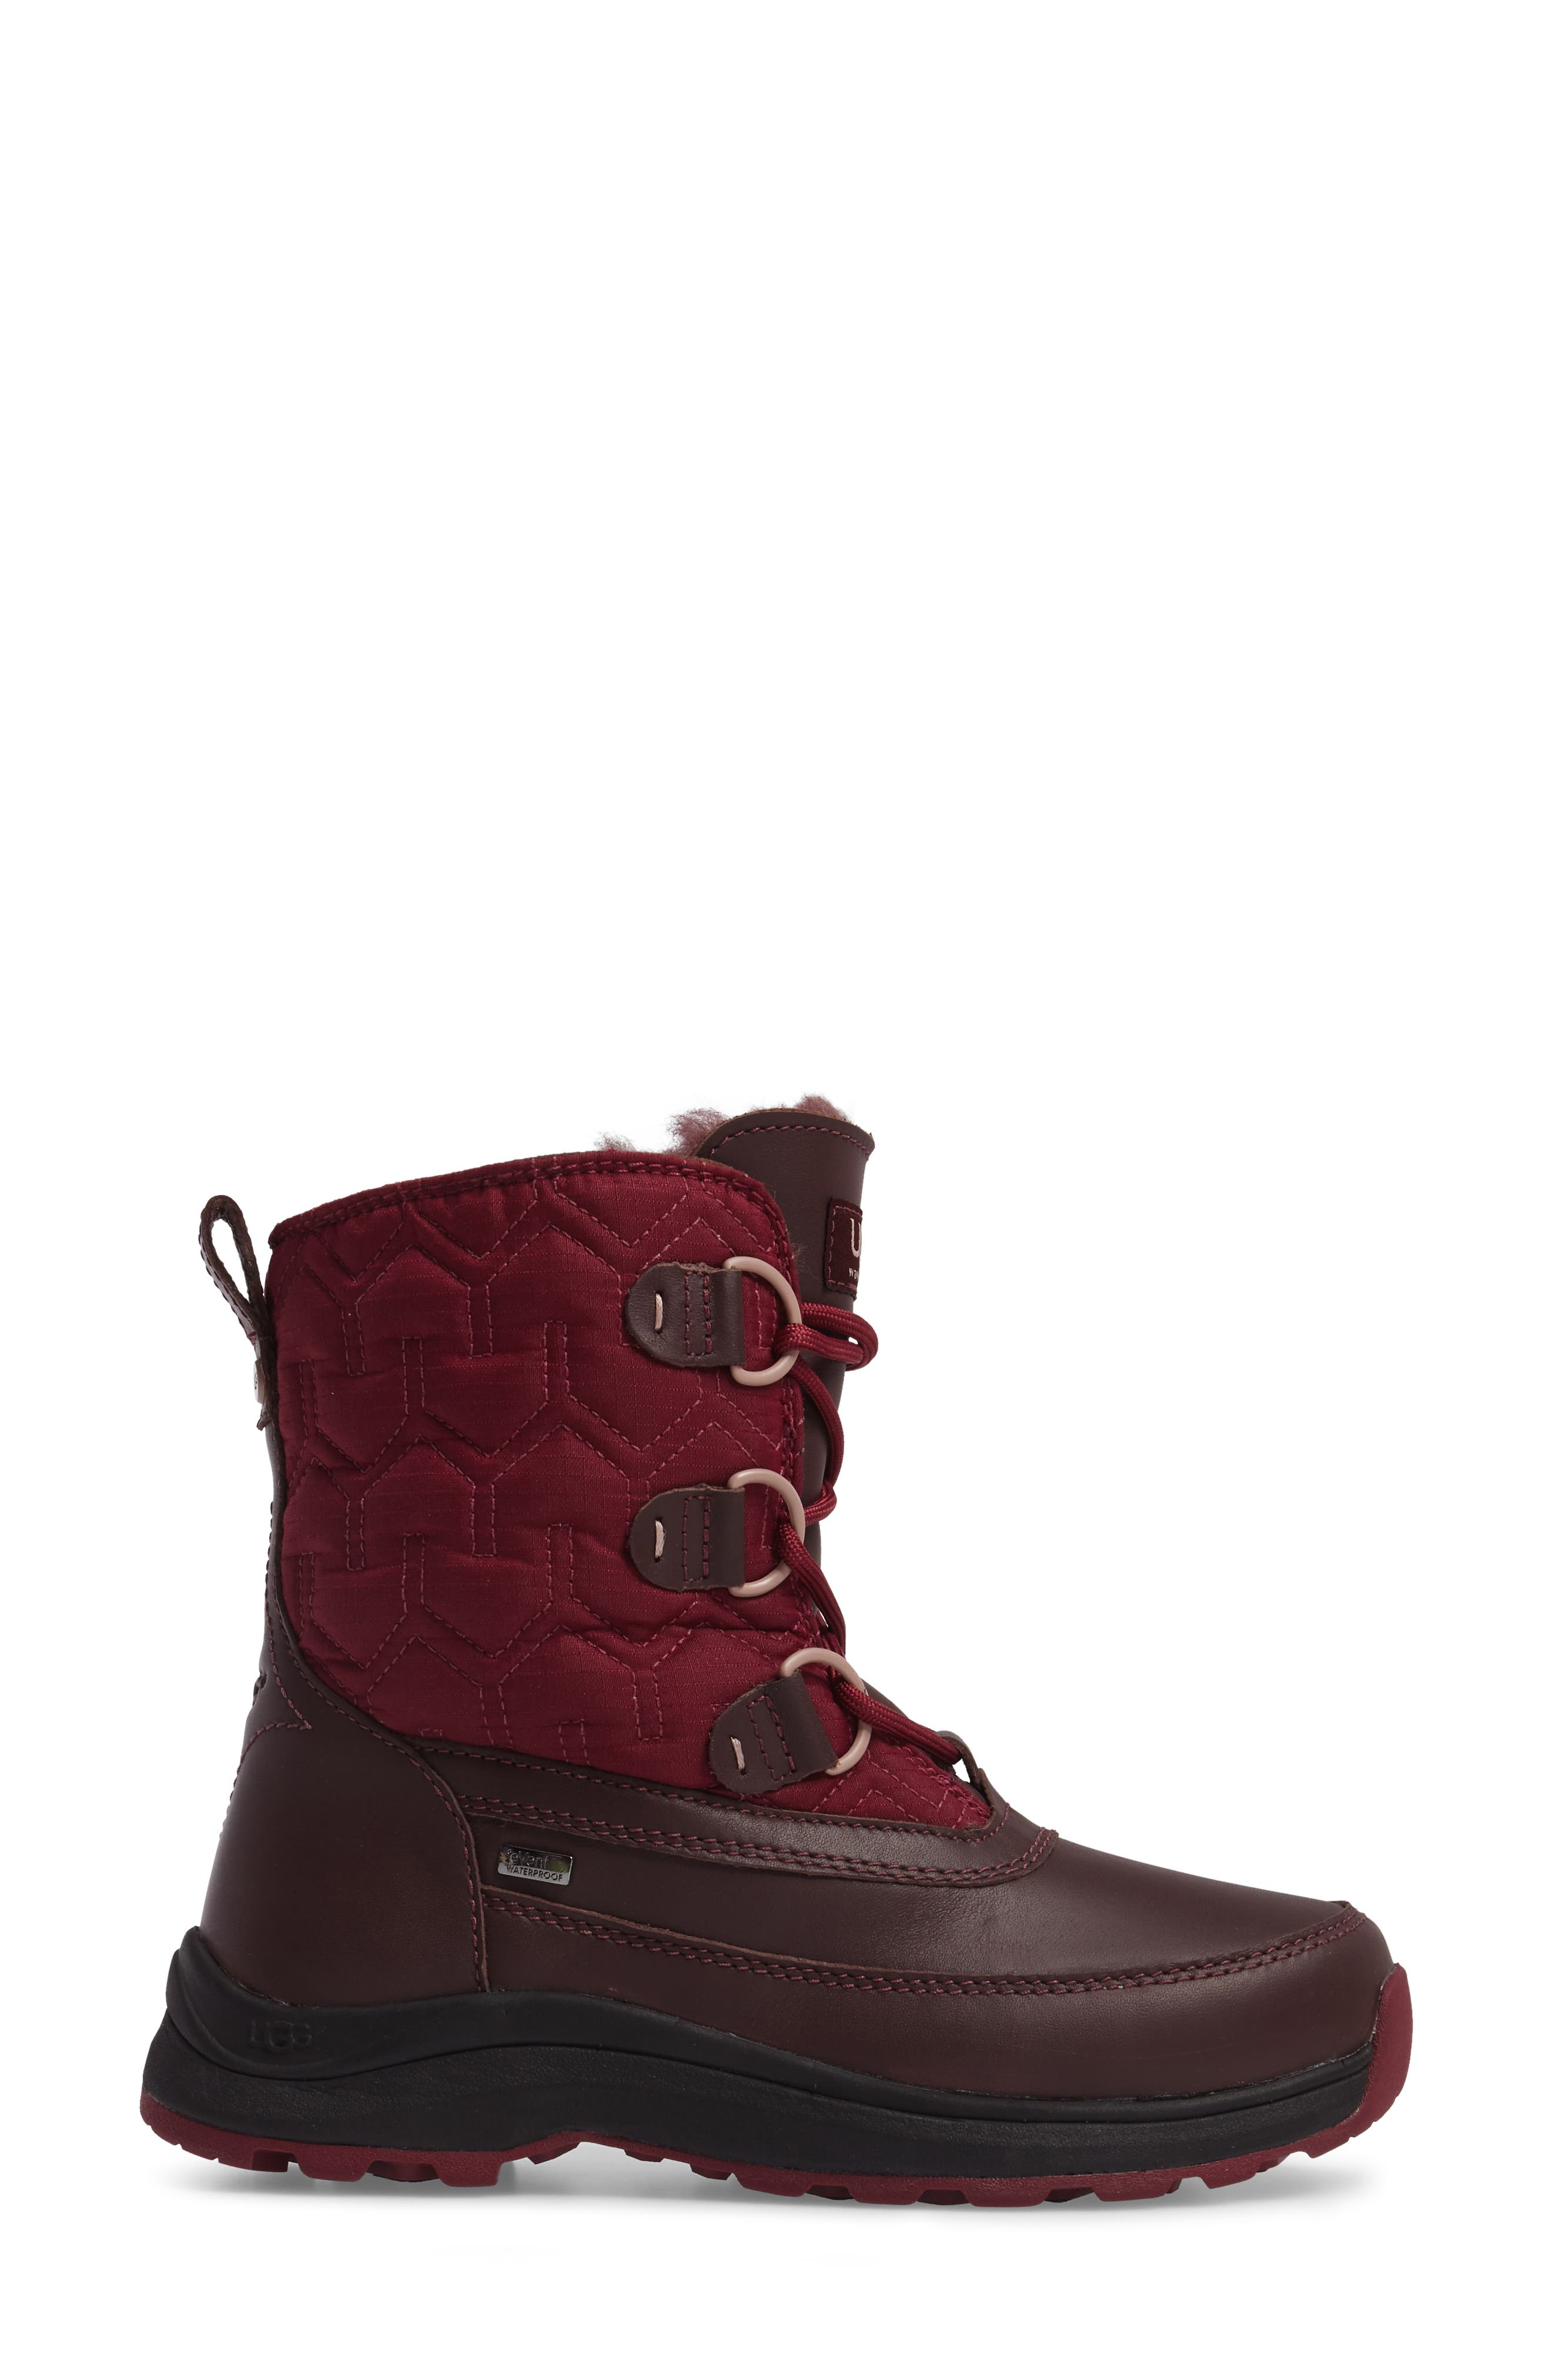 Lachlan Waterproof Insulated Snow Boot,                             Alternate thumbnail 9, color,